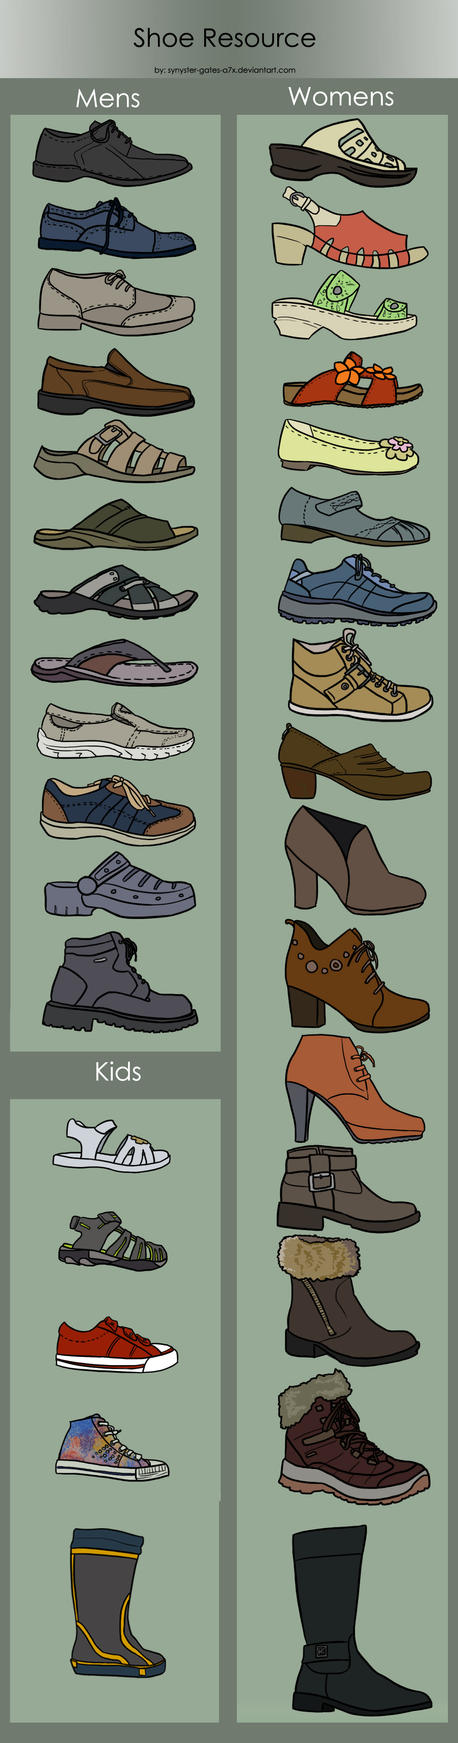 Shoe Resource by synyster-gates-A7X